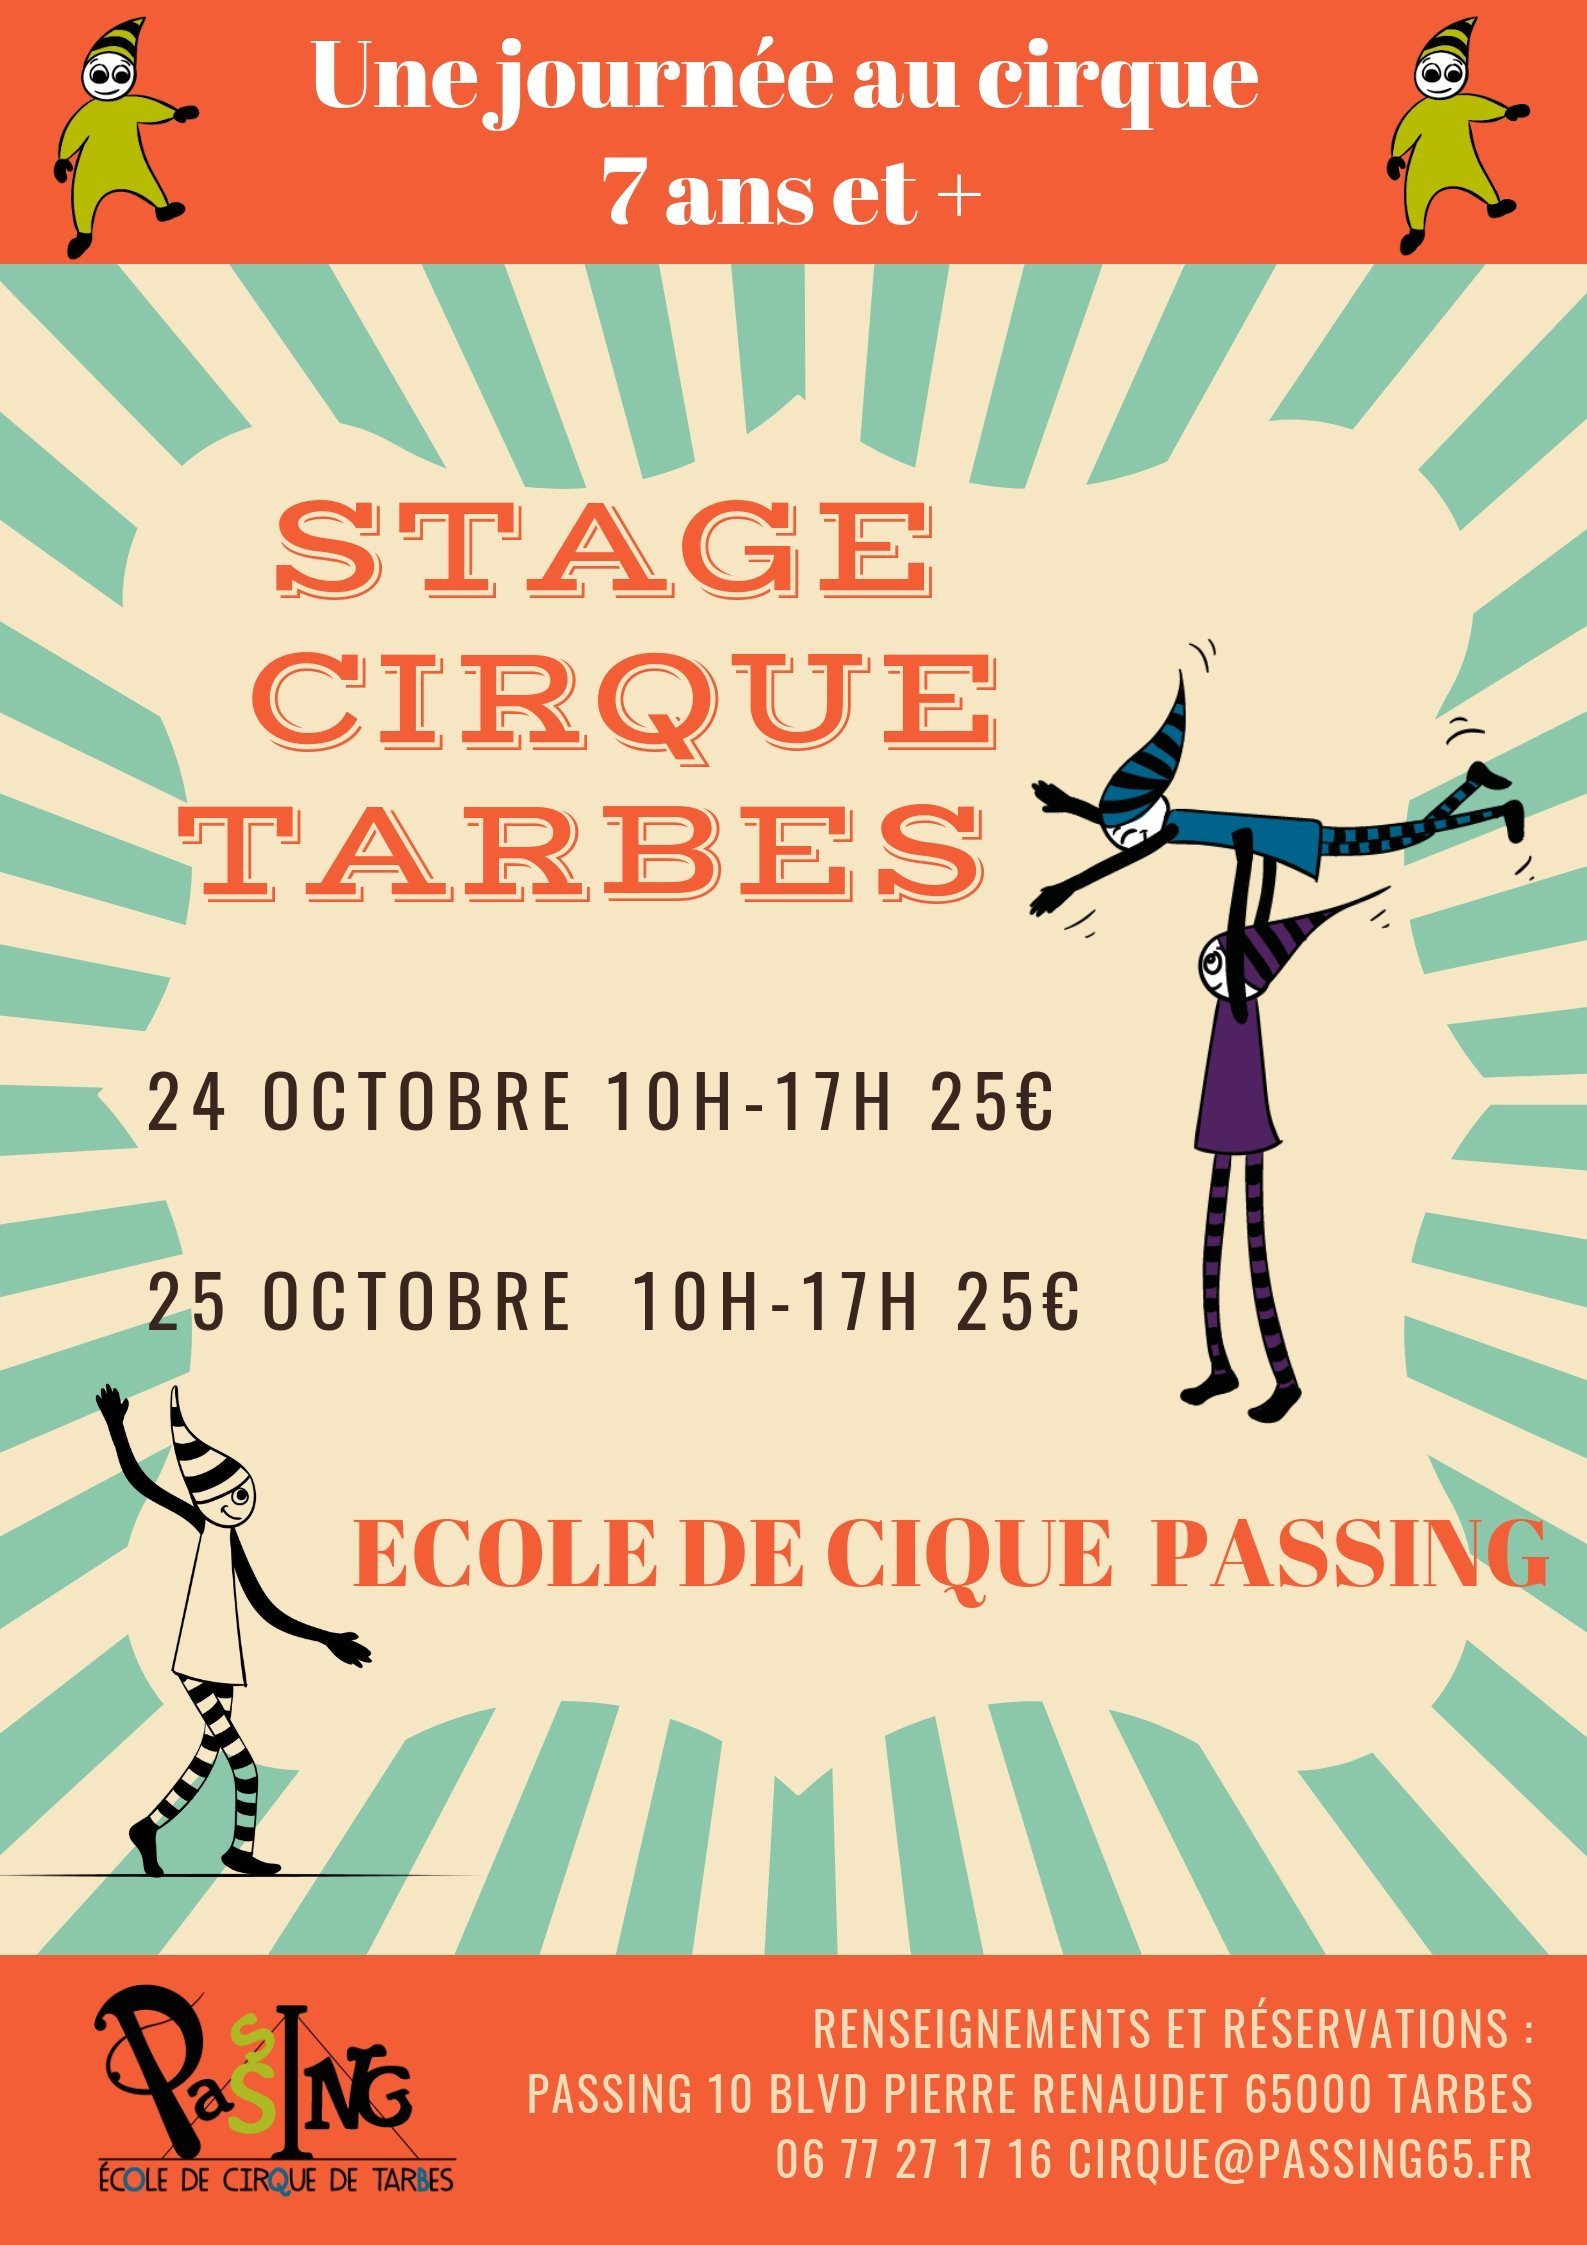 STAGES CIRQUE